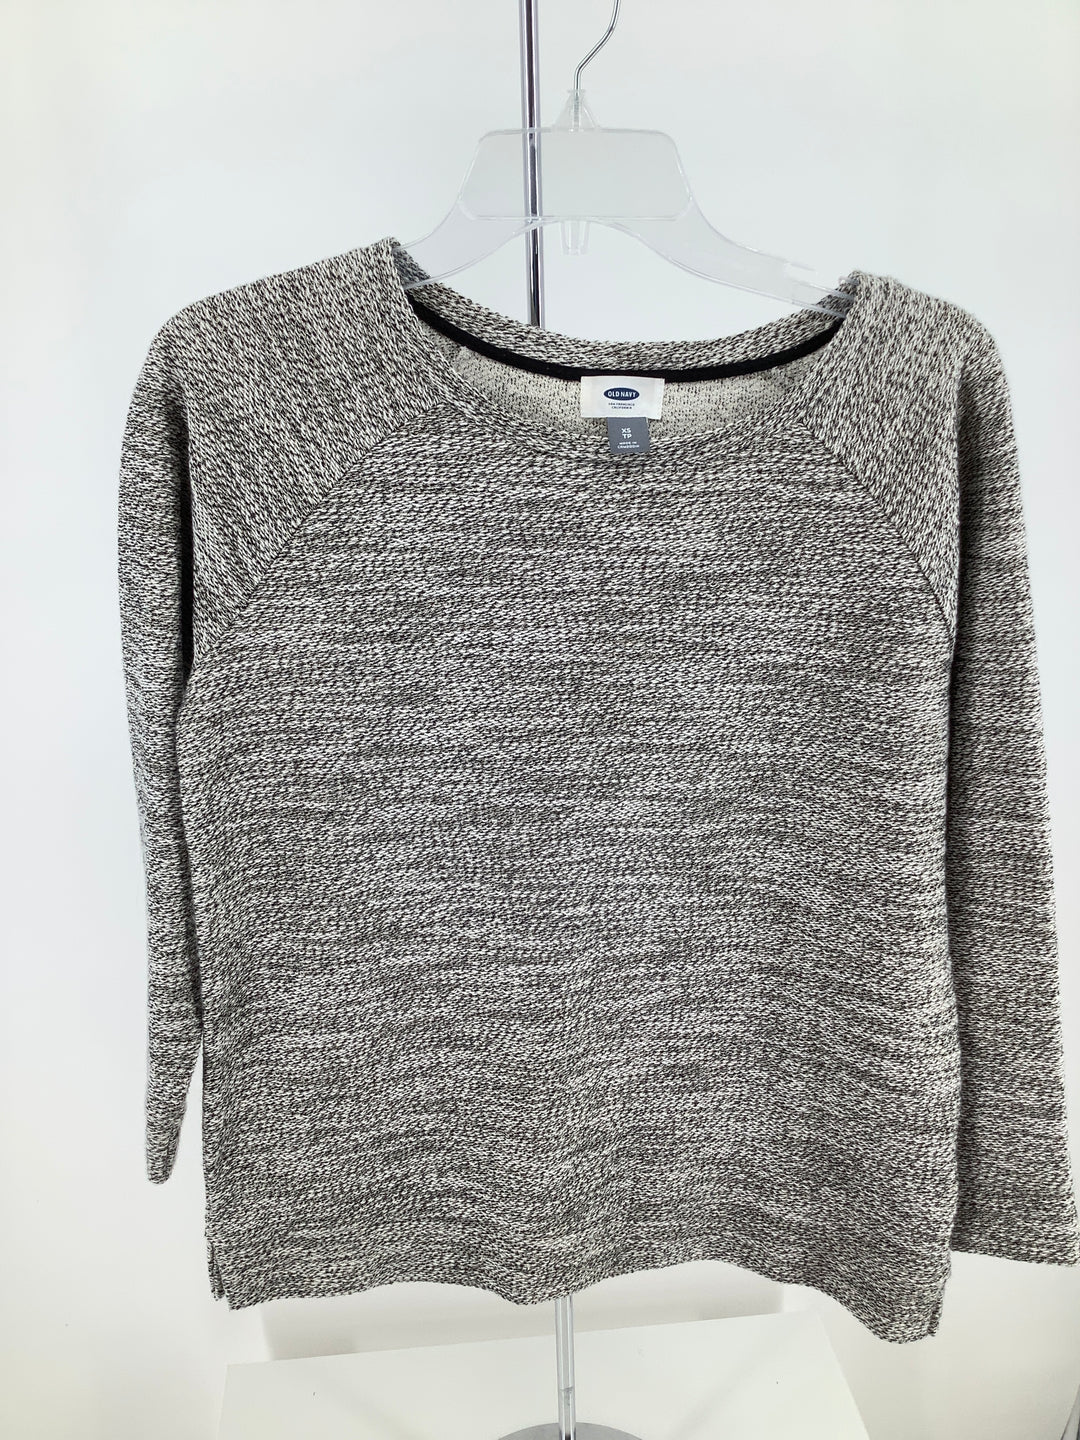 Primary Photo - brand: old navy , style: top long sleeve , color: black white , size: xs , sku: 105-4940-6703